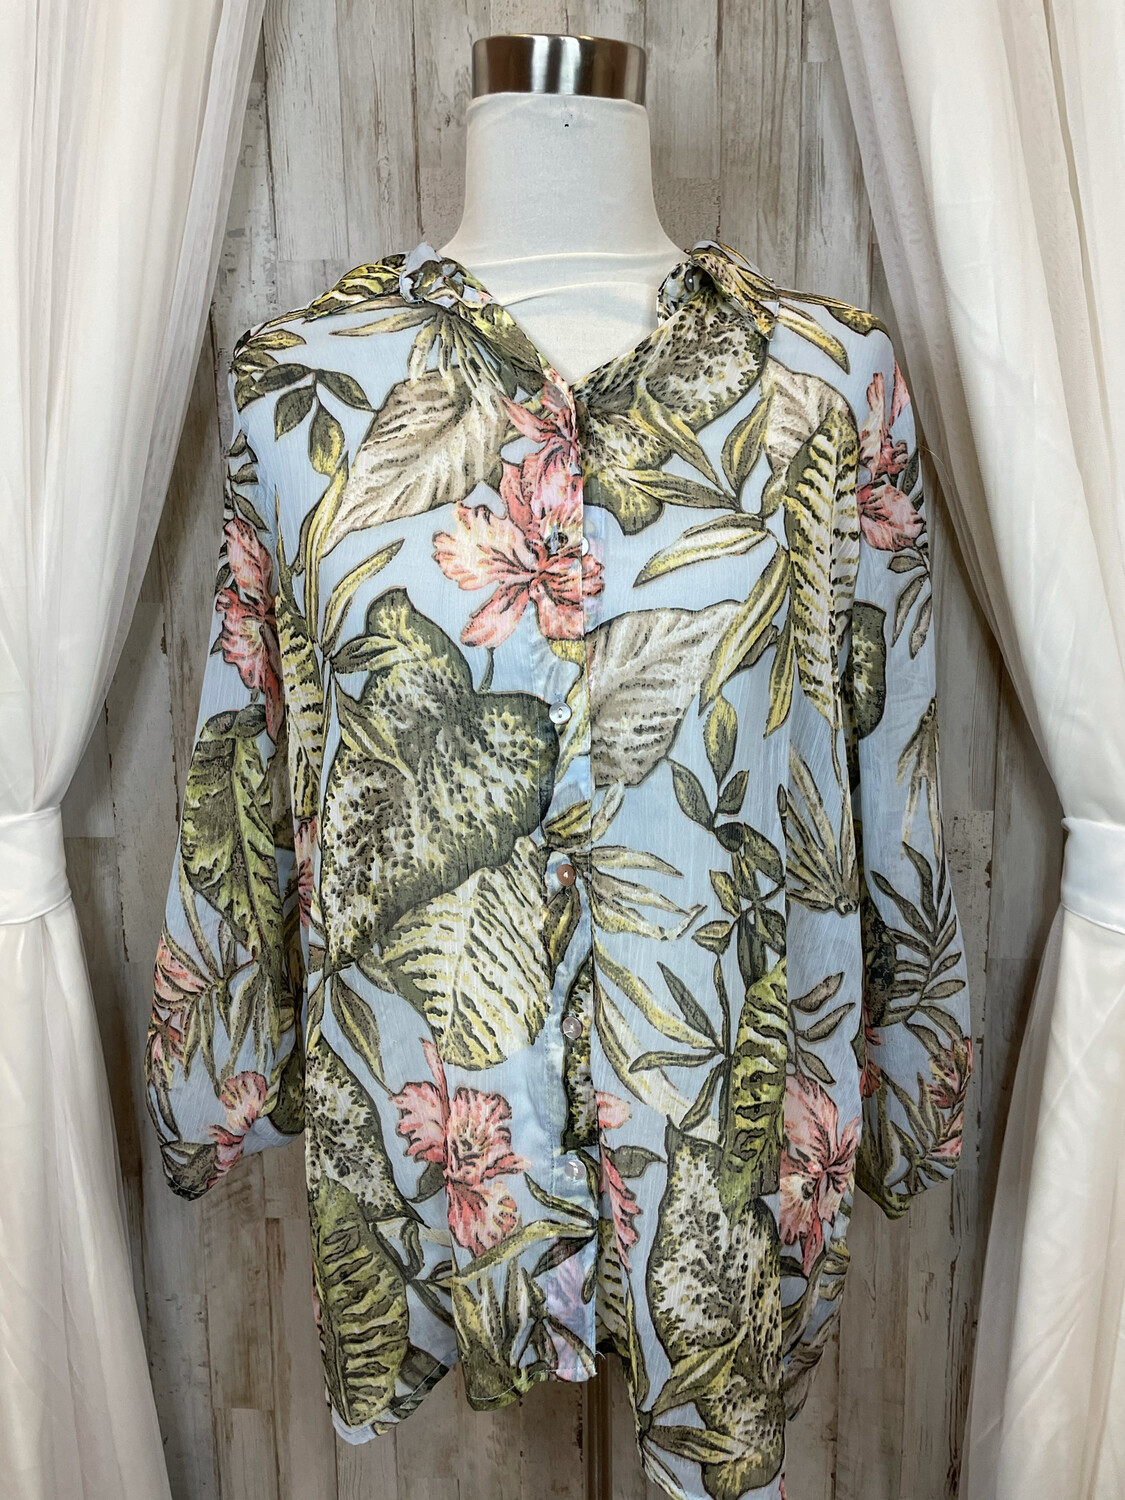 Chico's Blue Sheer Top w/Fern & Floral Print - Size 2